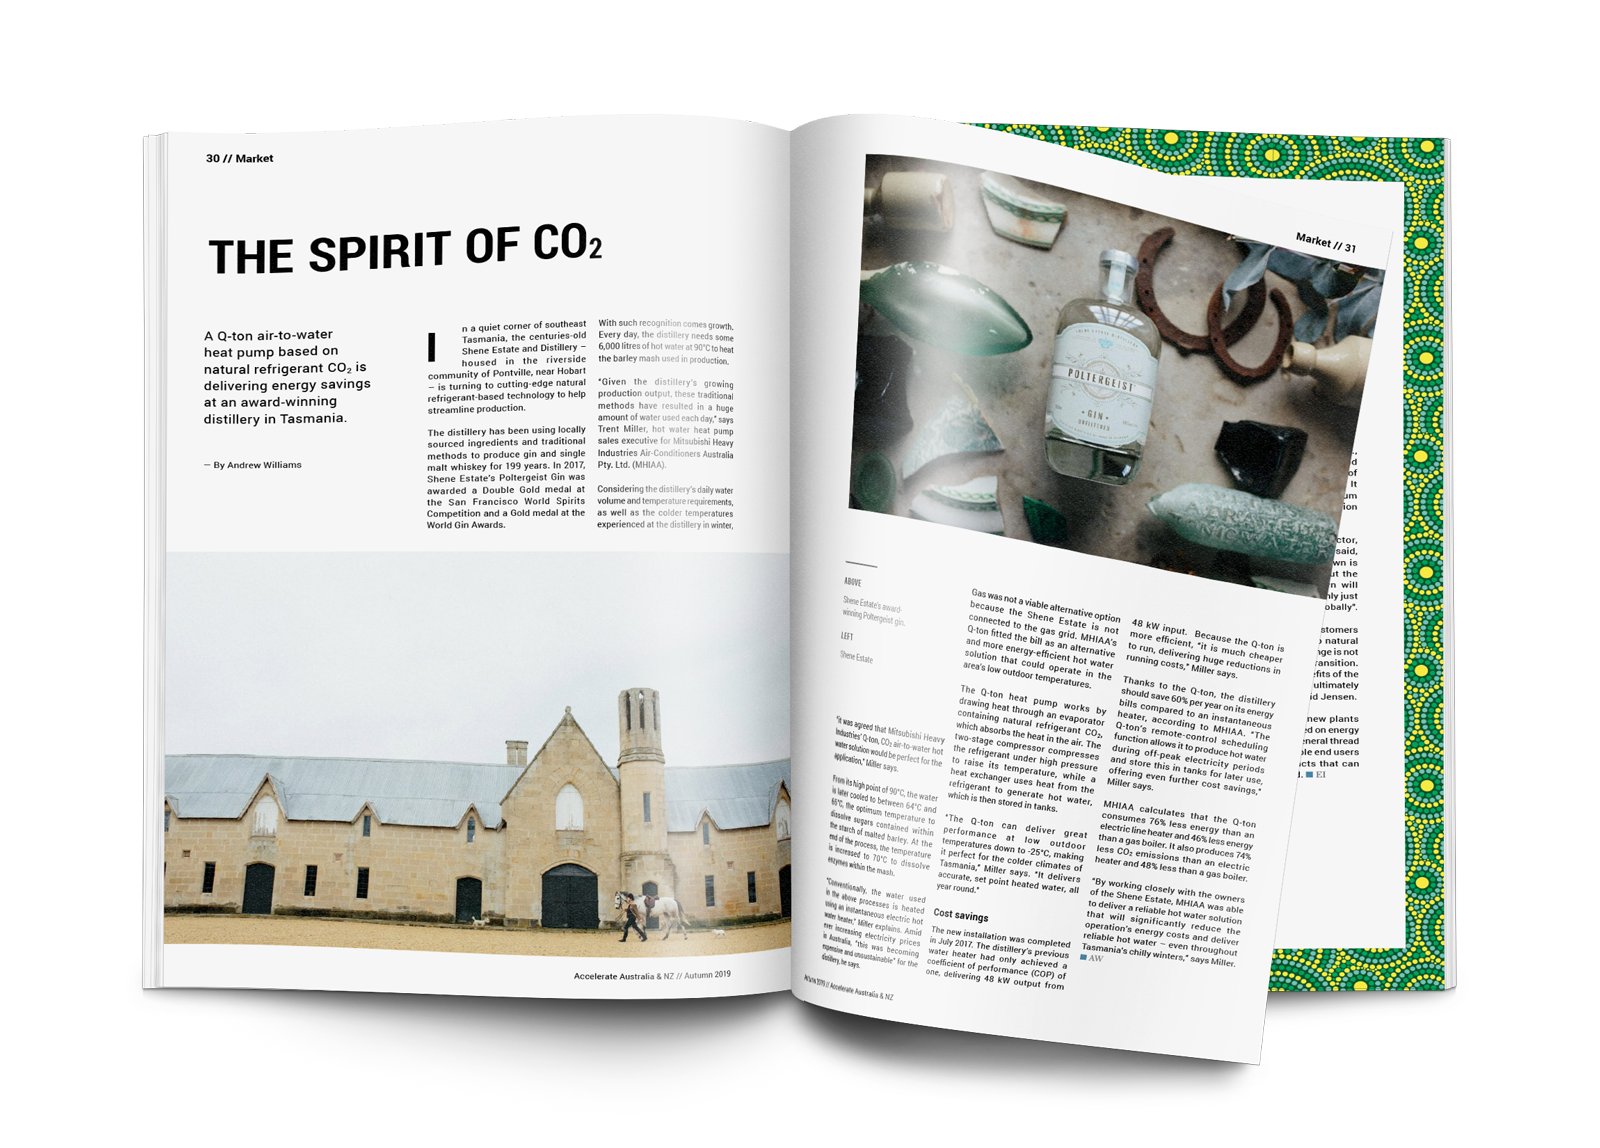 The spirit of CO<sub>2</sub>: Shene Estate and Distillery